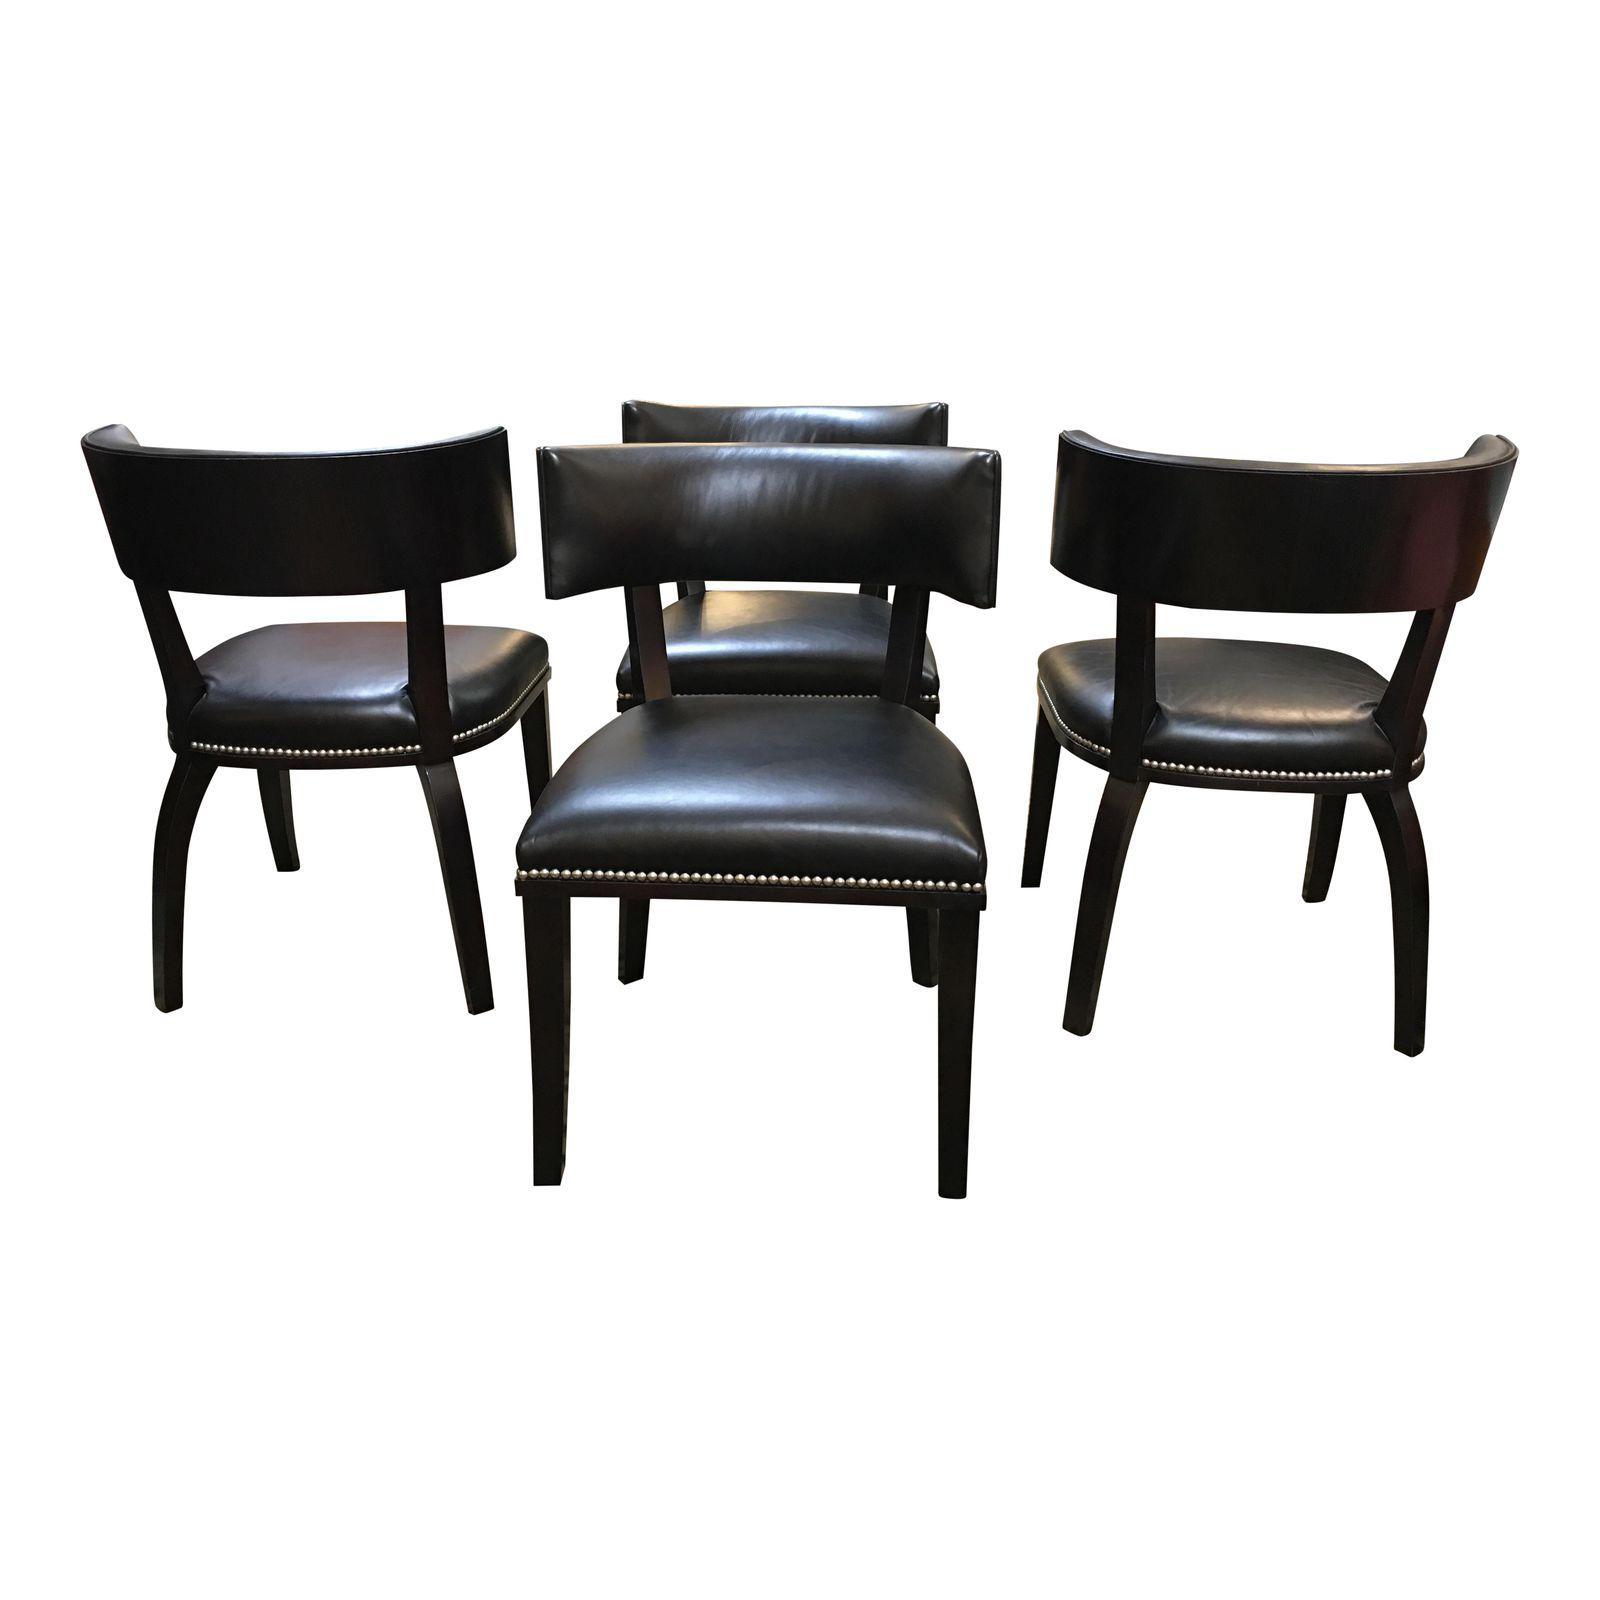 Ralph Lauren Clivedon Dining Chairs Set Of Four Original Price